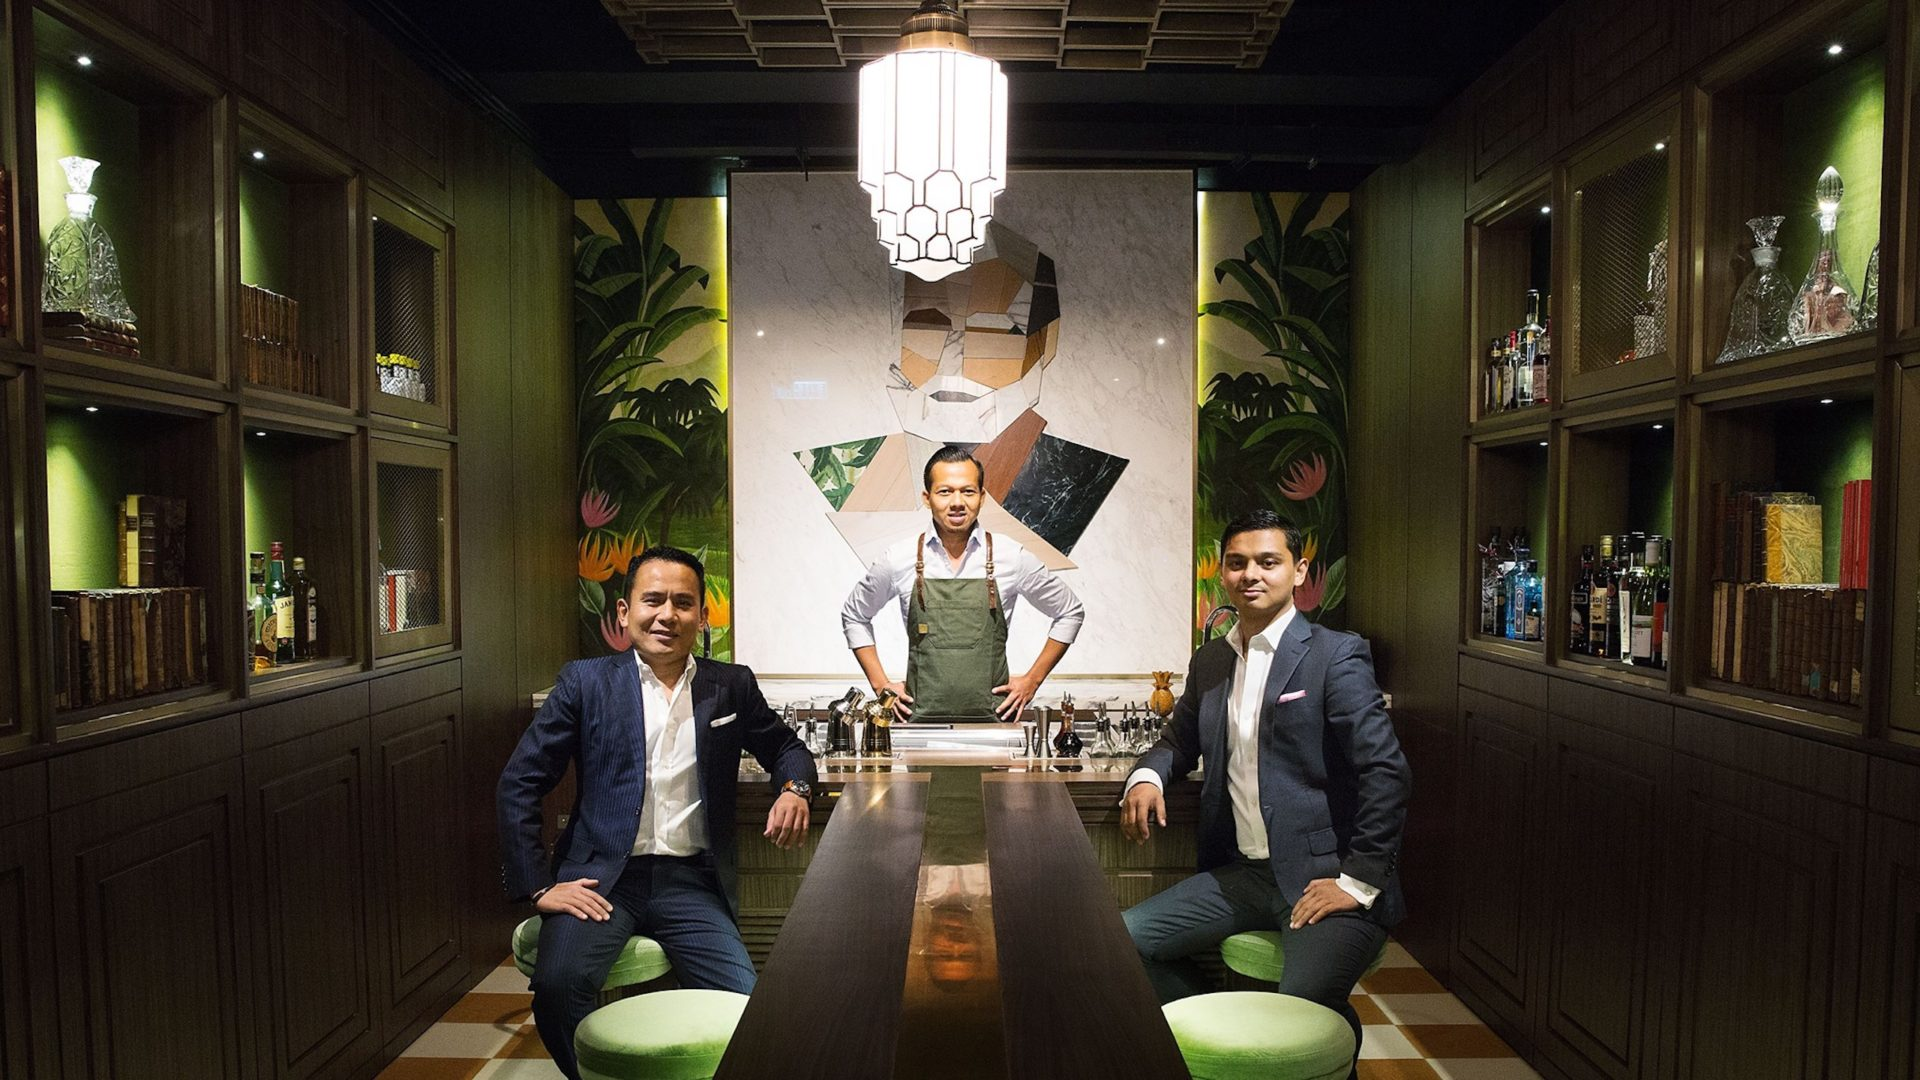 Asia's 50 Best Bars 2019: A new top dog, but Singapore still top region